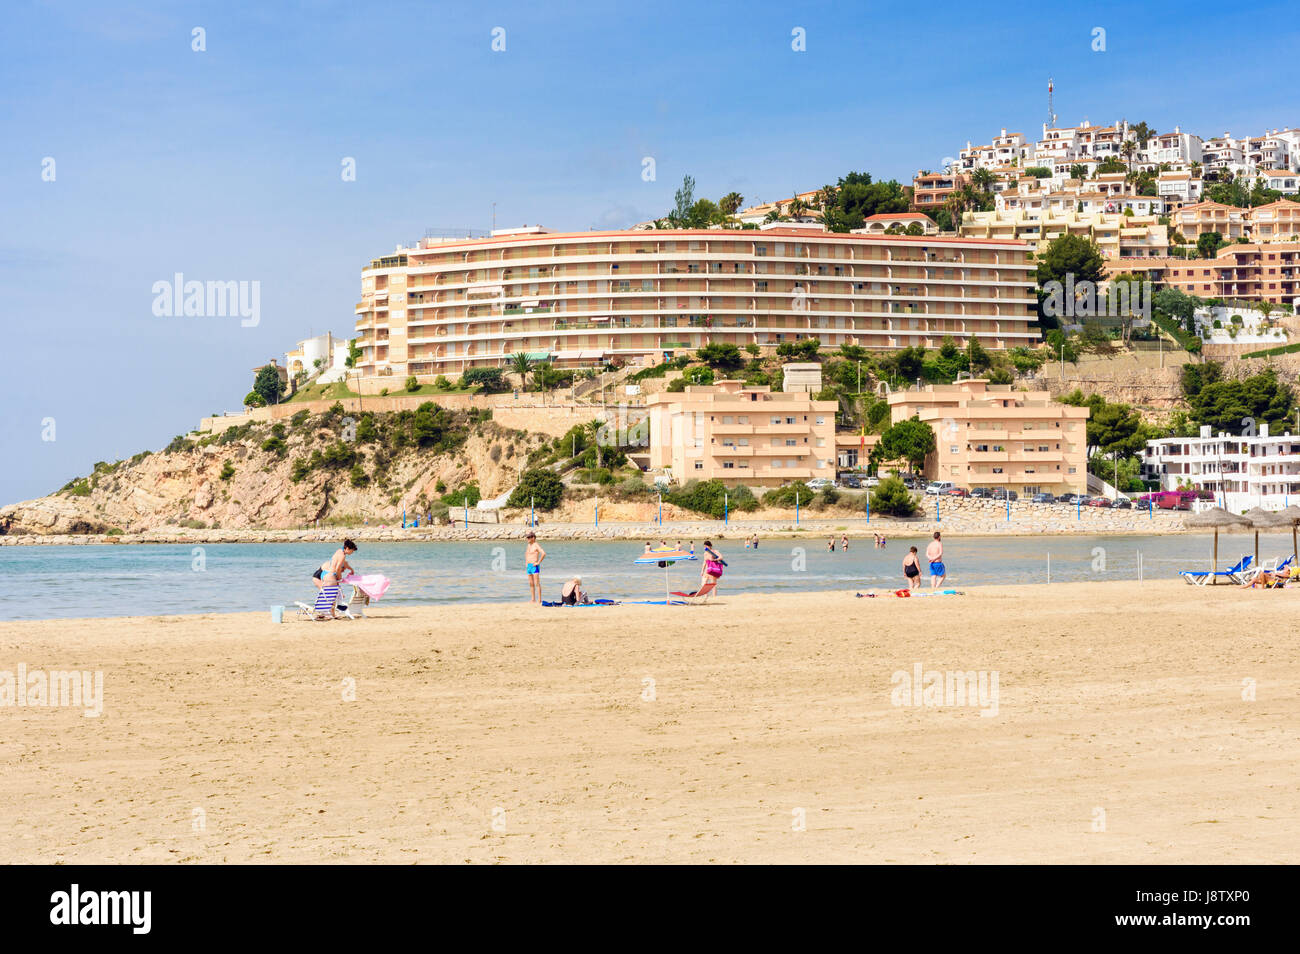 People on Playa Sur, the South Beach overlooked by modern coastal development along the Costa del Azahar, Peniscola, - Stock Image